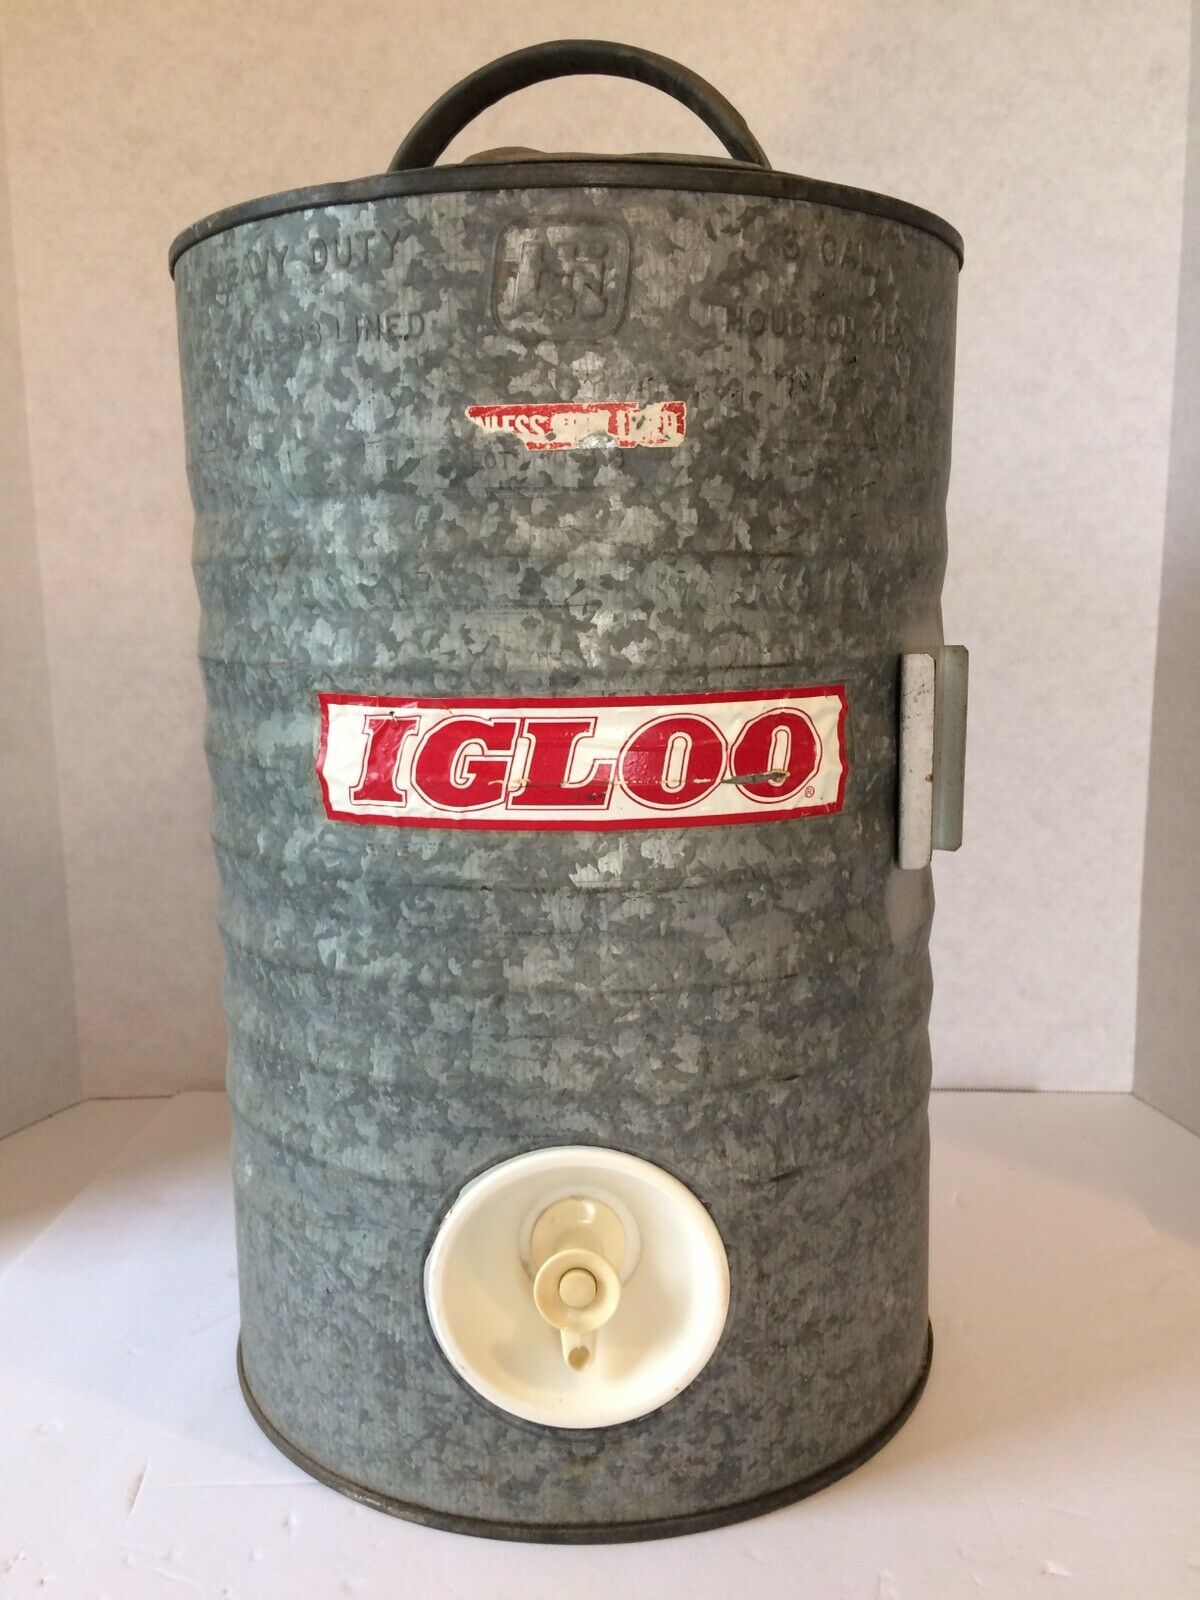 Vintage Igloo 3 Gallon Water Cooler - Stainless Lined Galvanized Steel - Rare